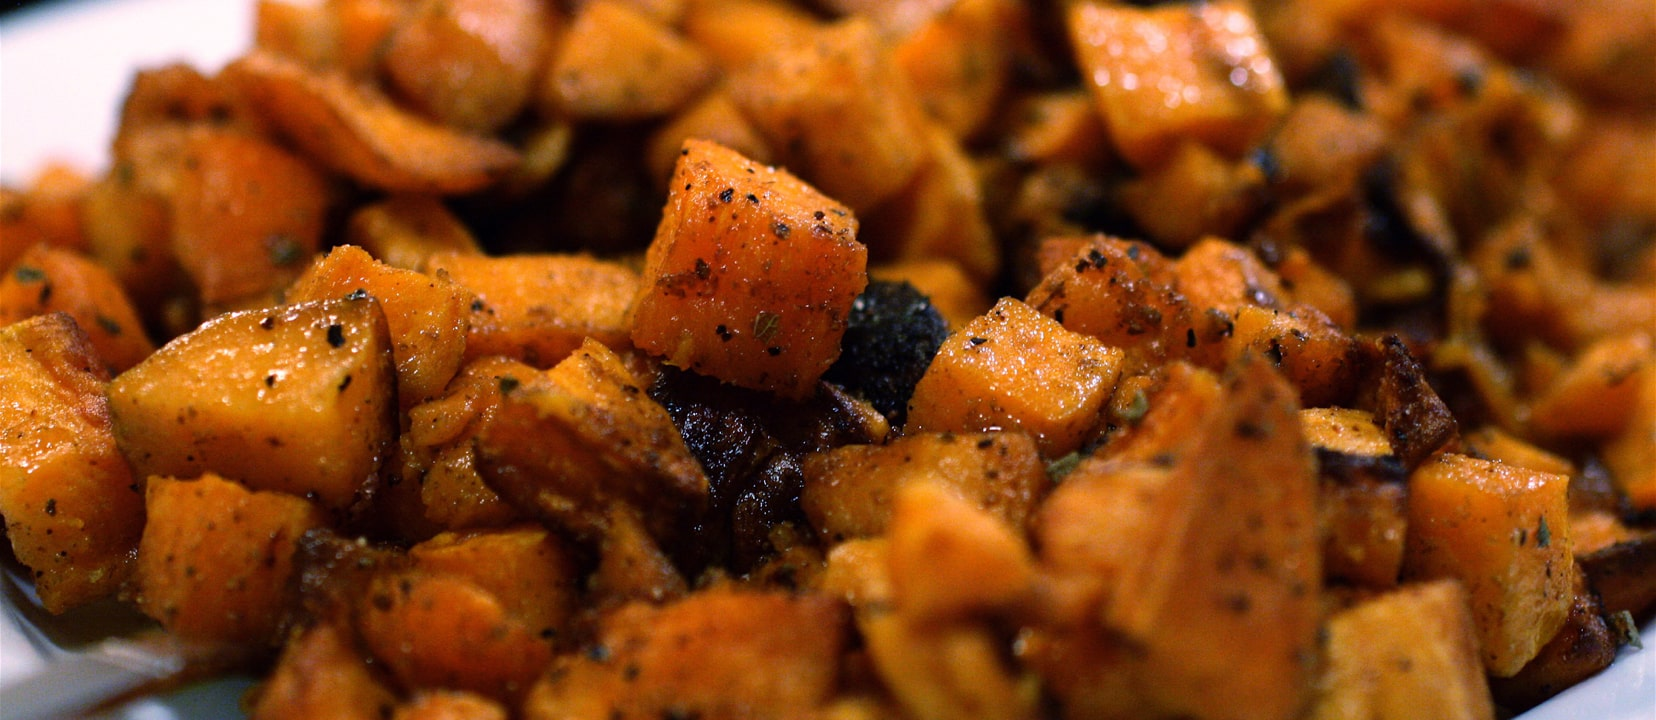 Anti Cancer Potential of Sweet Potato Proteins